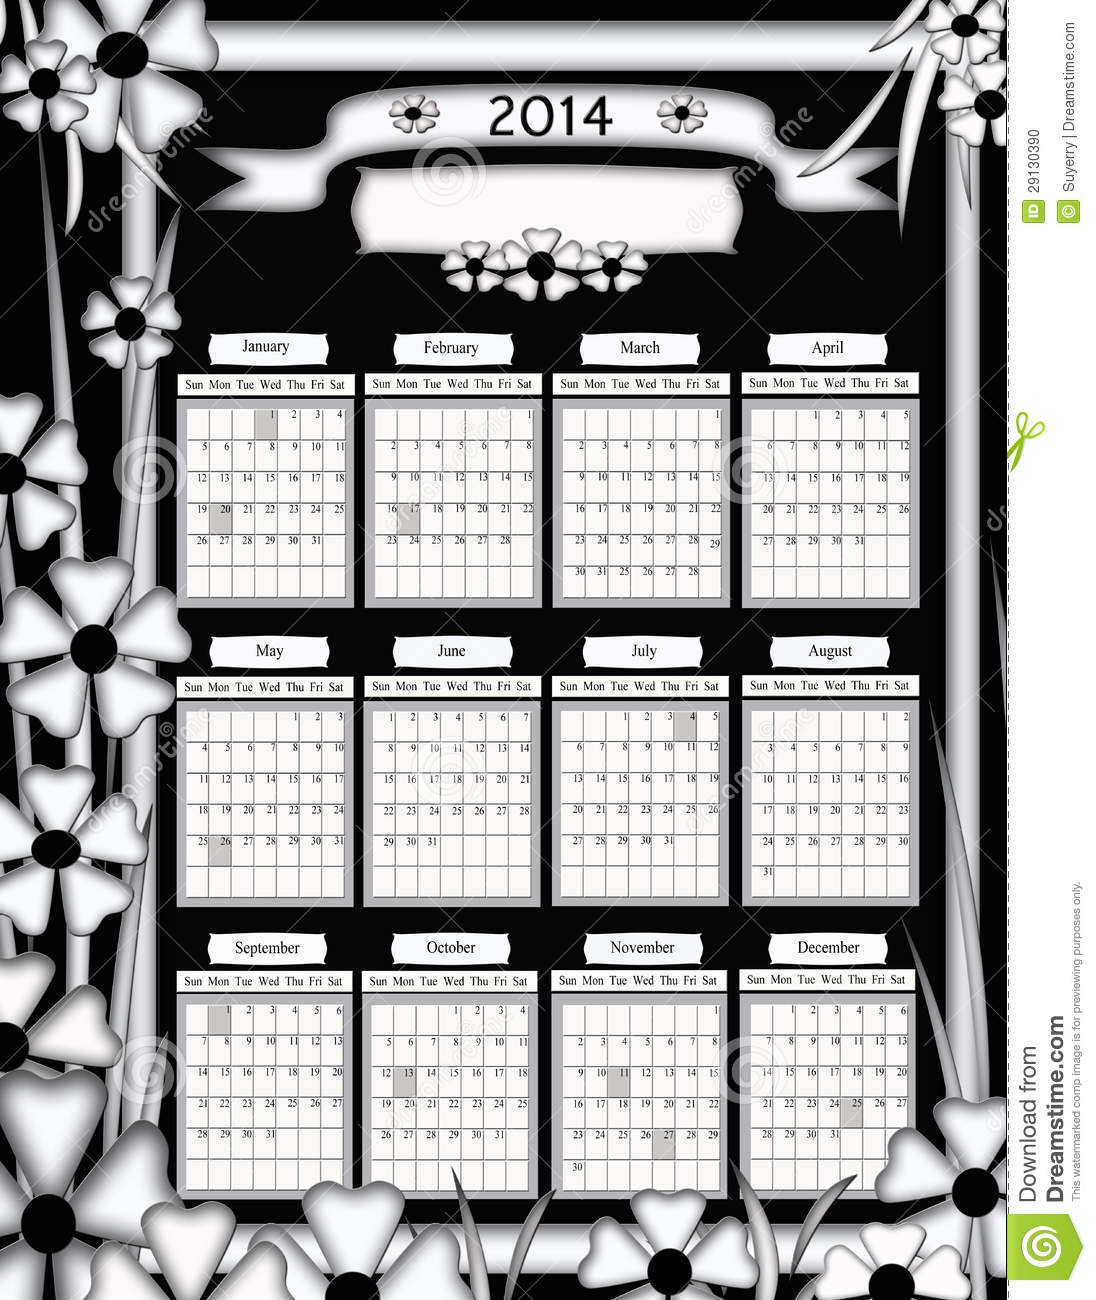 Calendar Black And White : Unique black and white floral design calendar stock